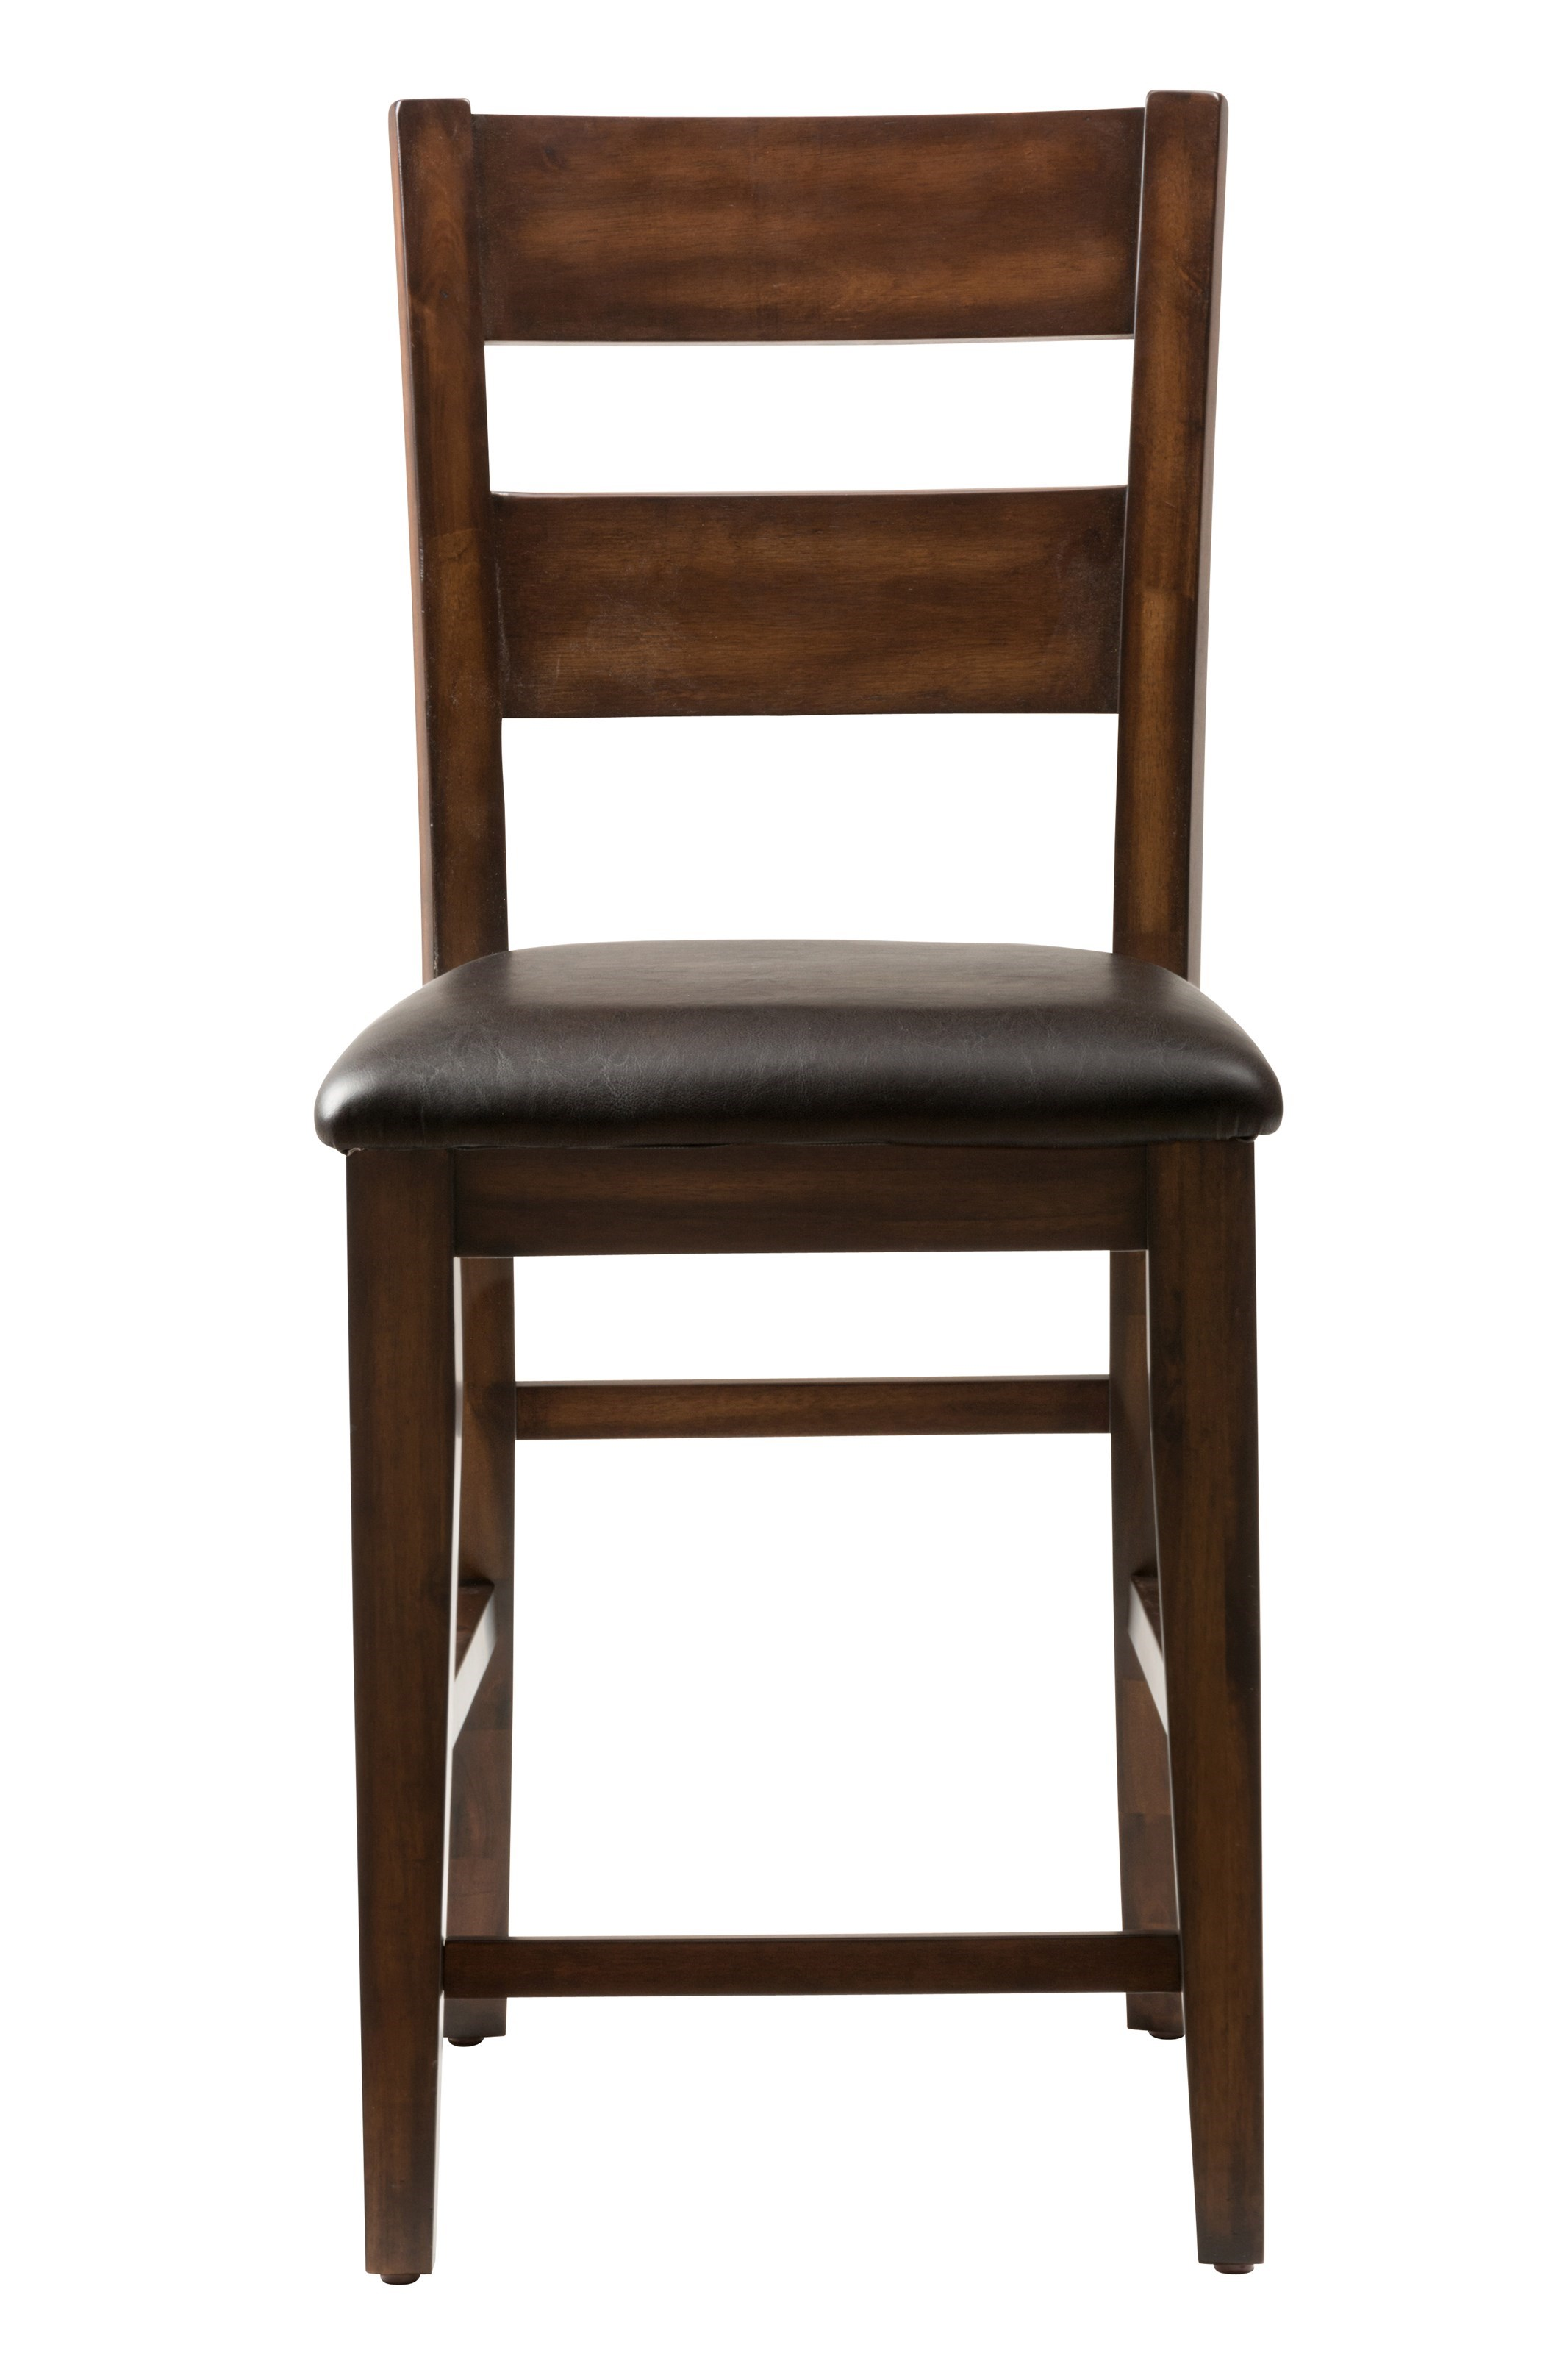 Jofran Cooke County Ladderback Counter Stool with Padded  : products2Fjofran2Fcolor2Fcooke20county20581581 bs478kd b5jpgscalebothampwidth500ampheight500ampfsharpen25ampdown from www.pilgrimfurniturecity.com size 500 x 500 jpeg 18kB